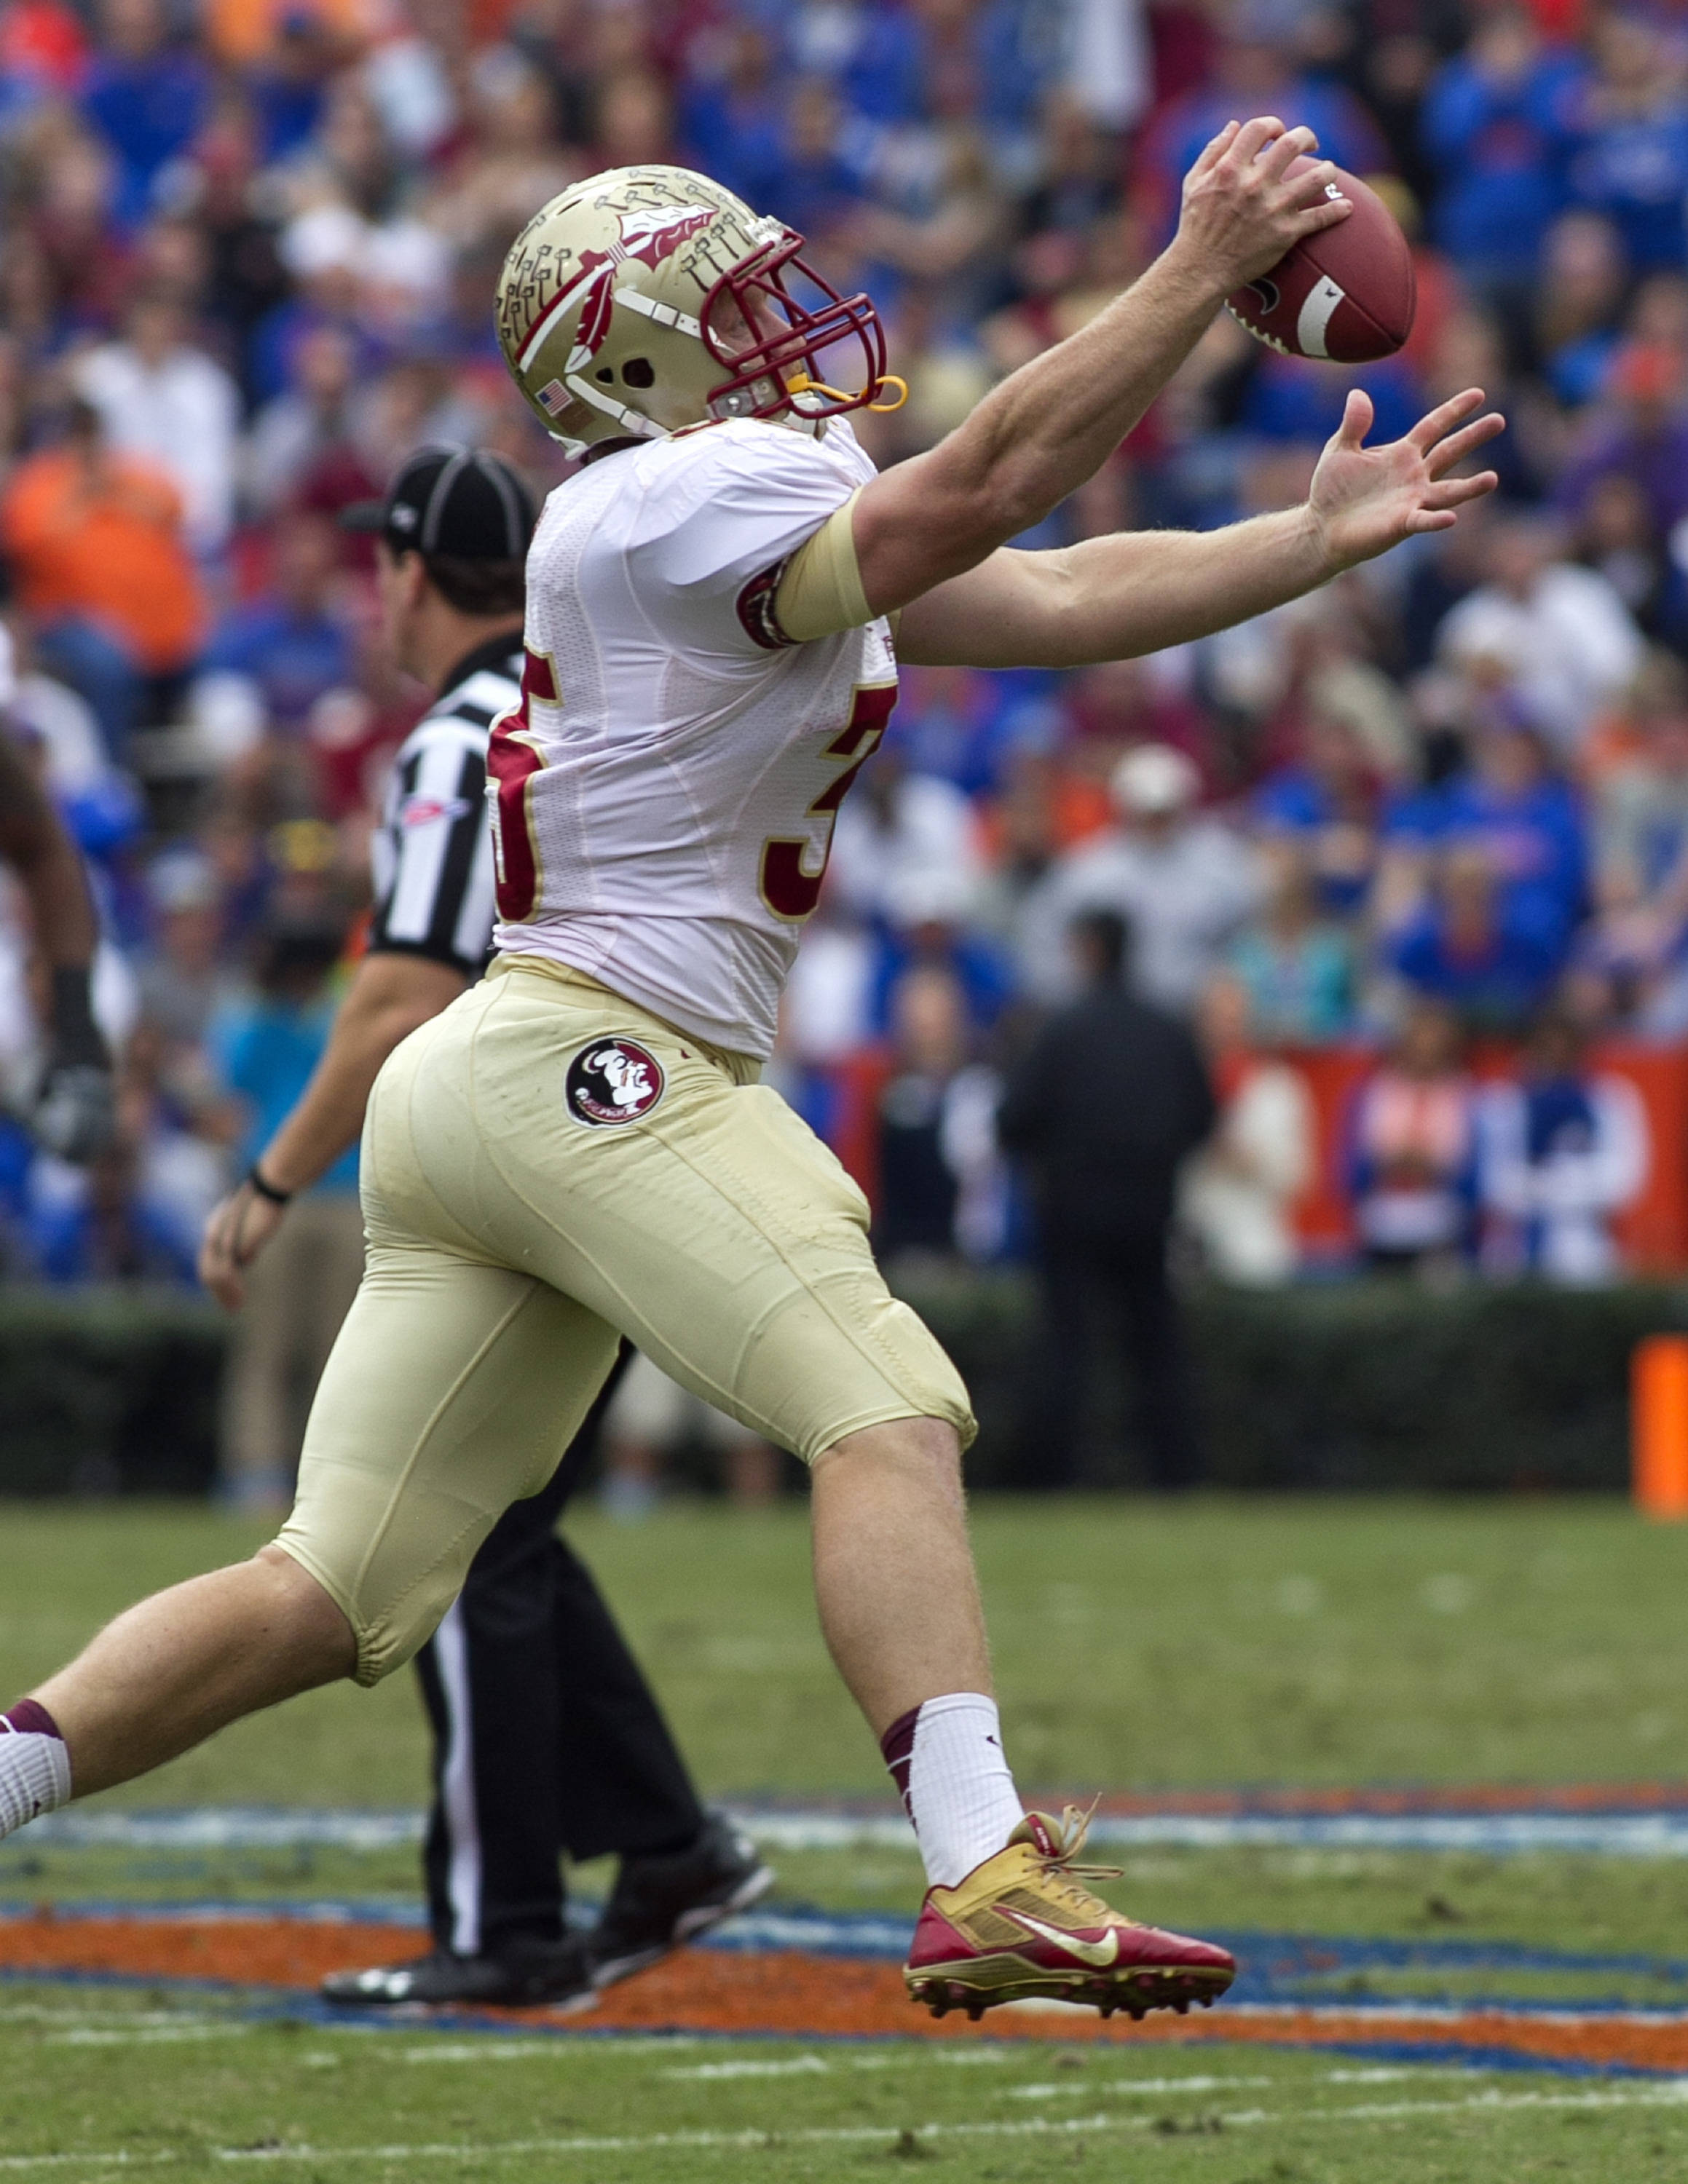 Nick O'Leary (35) with a great one handed catch, FSU vs Florida, 11-30-13,  (Photo by Steve Musco)